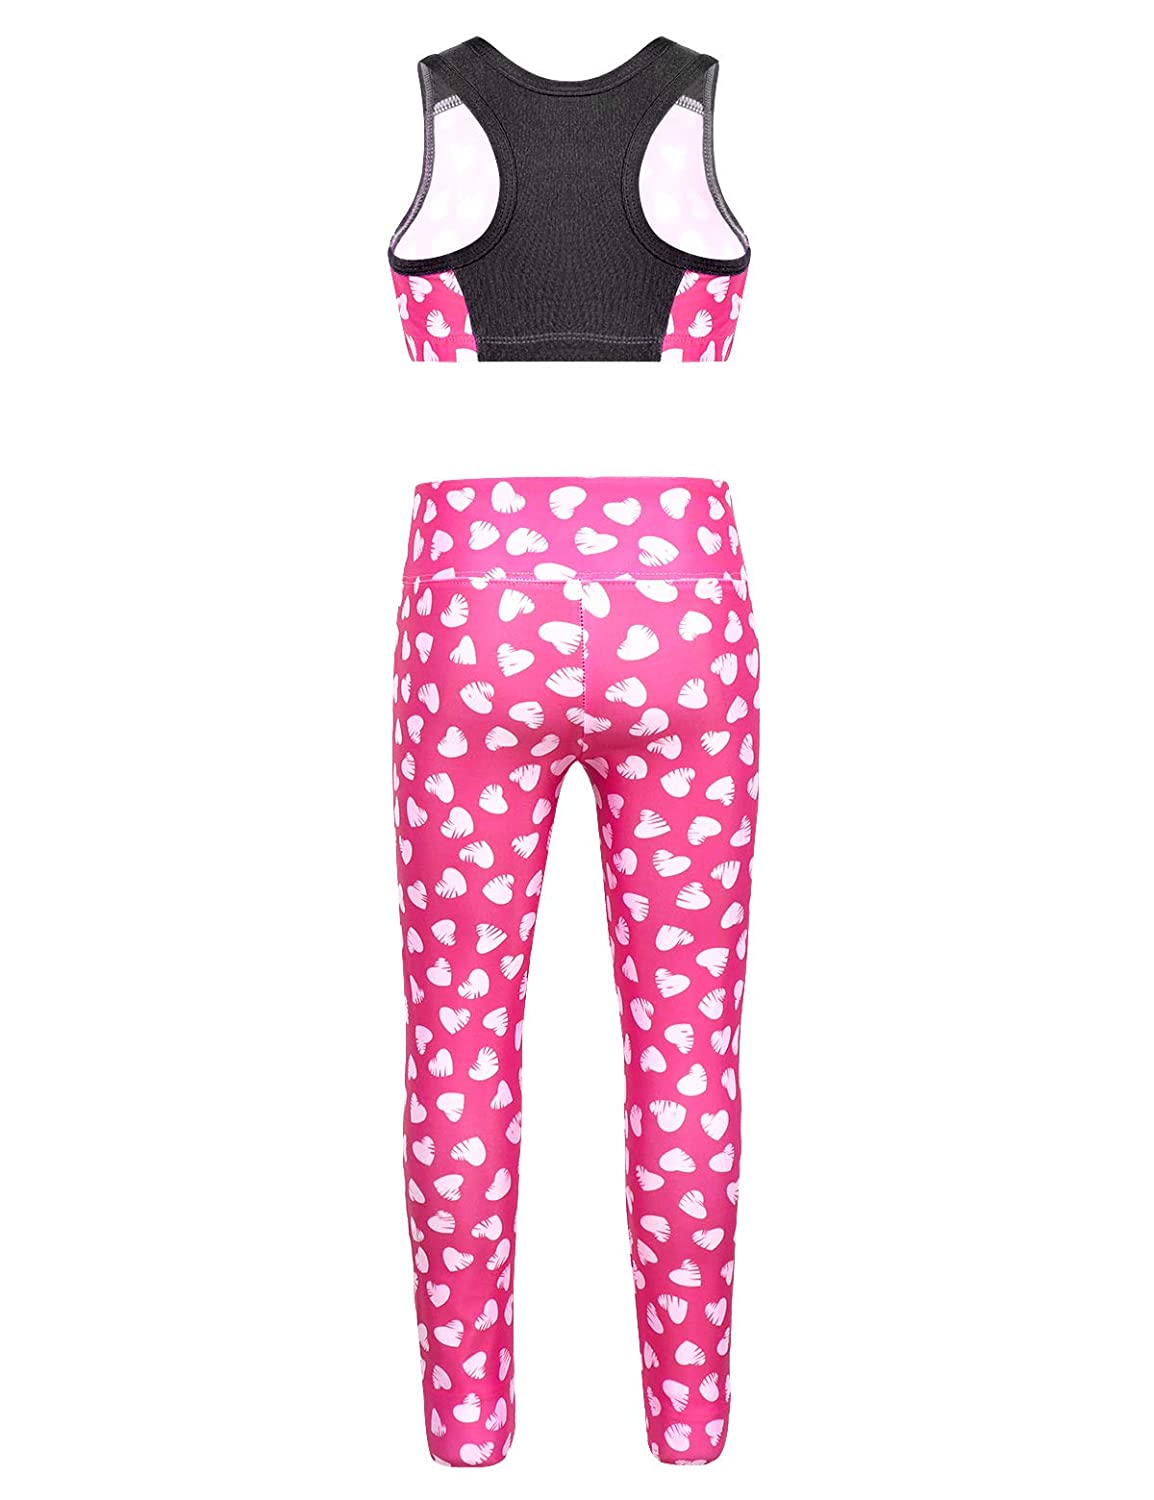 CHICTRY Children Girls 2 Piece Athletic Leggings with Crop Tops Outfits Sets for Gymnastics Sports Workout